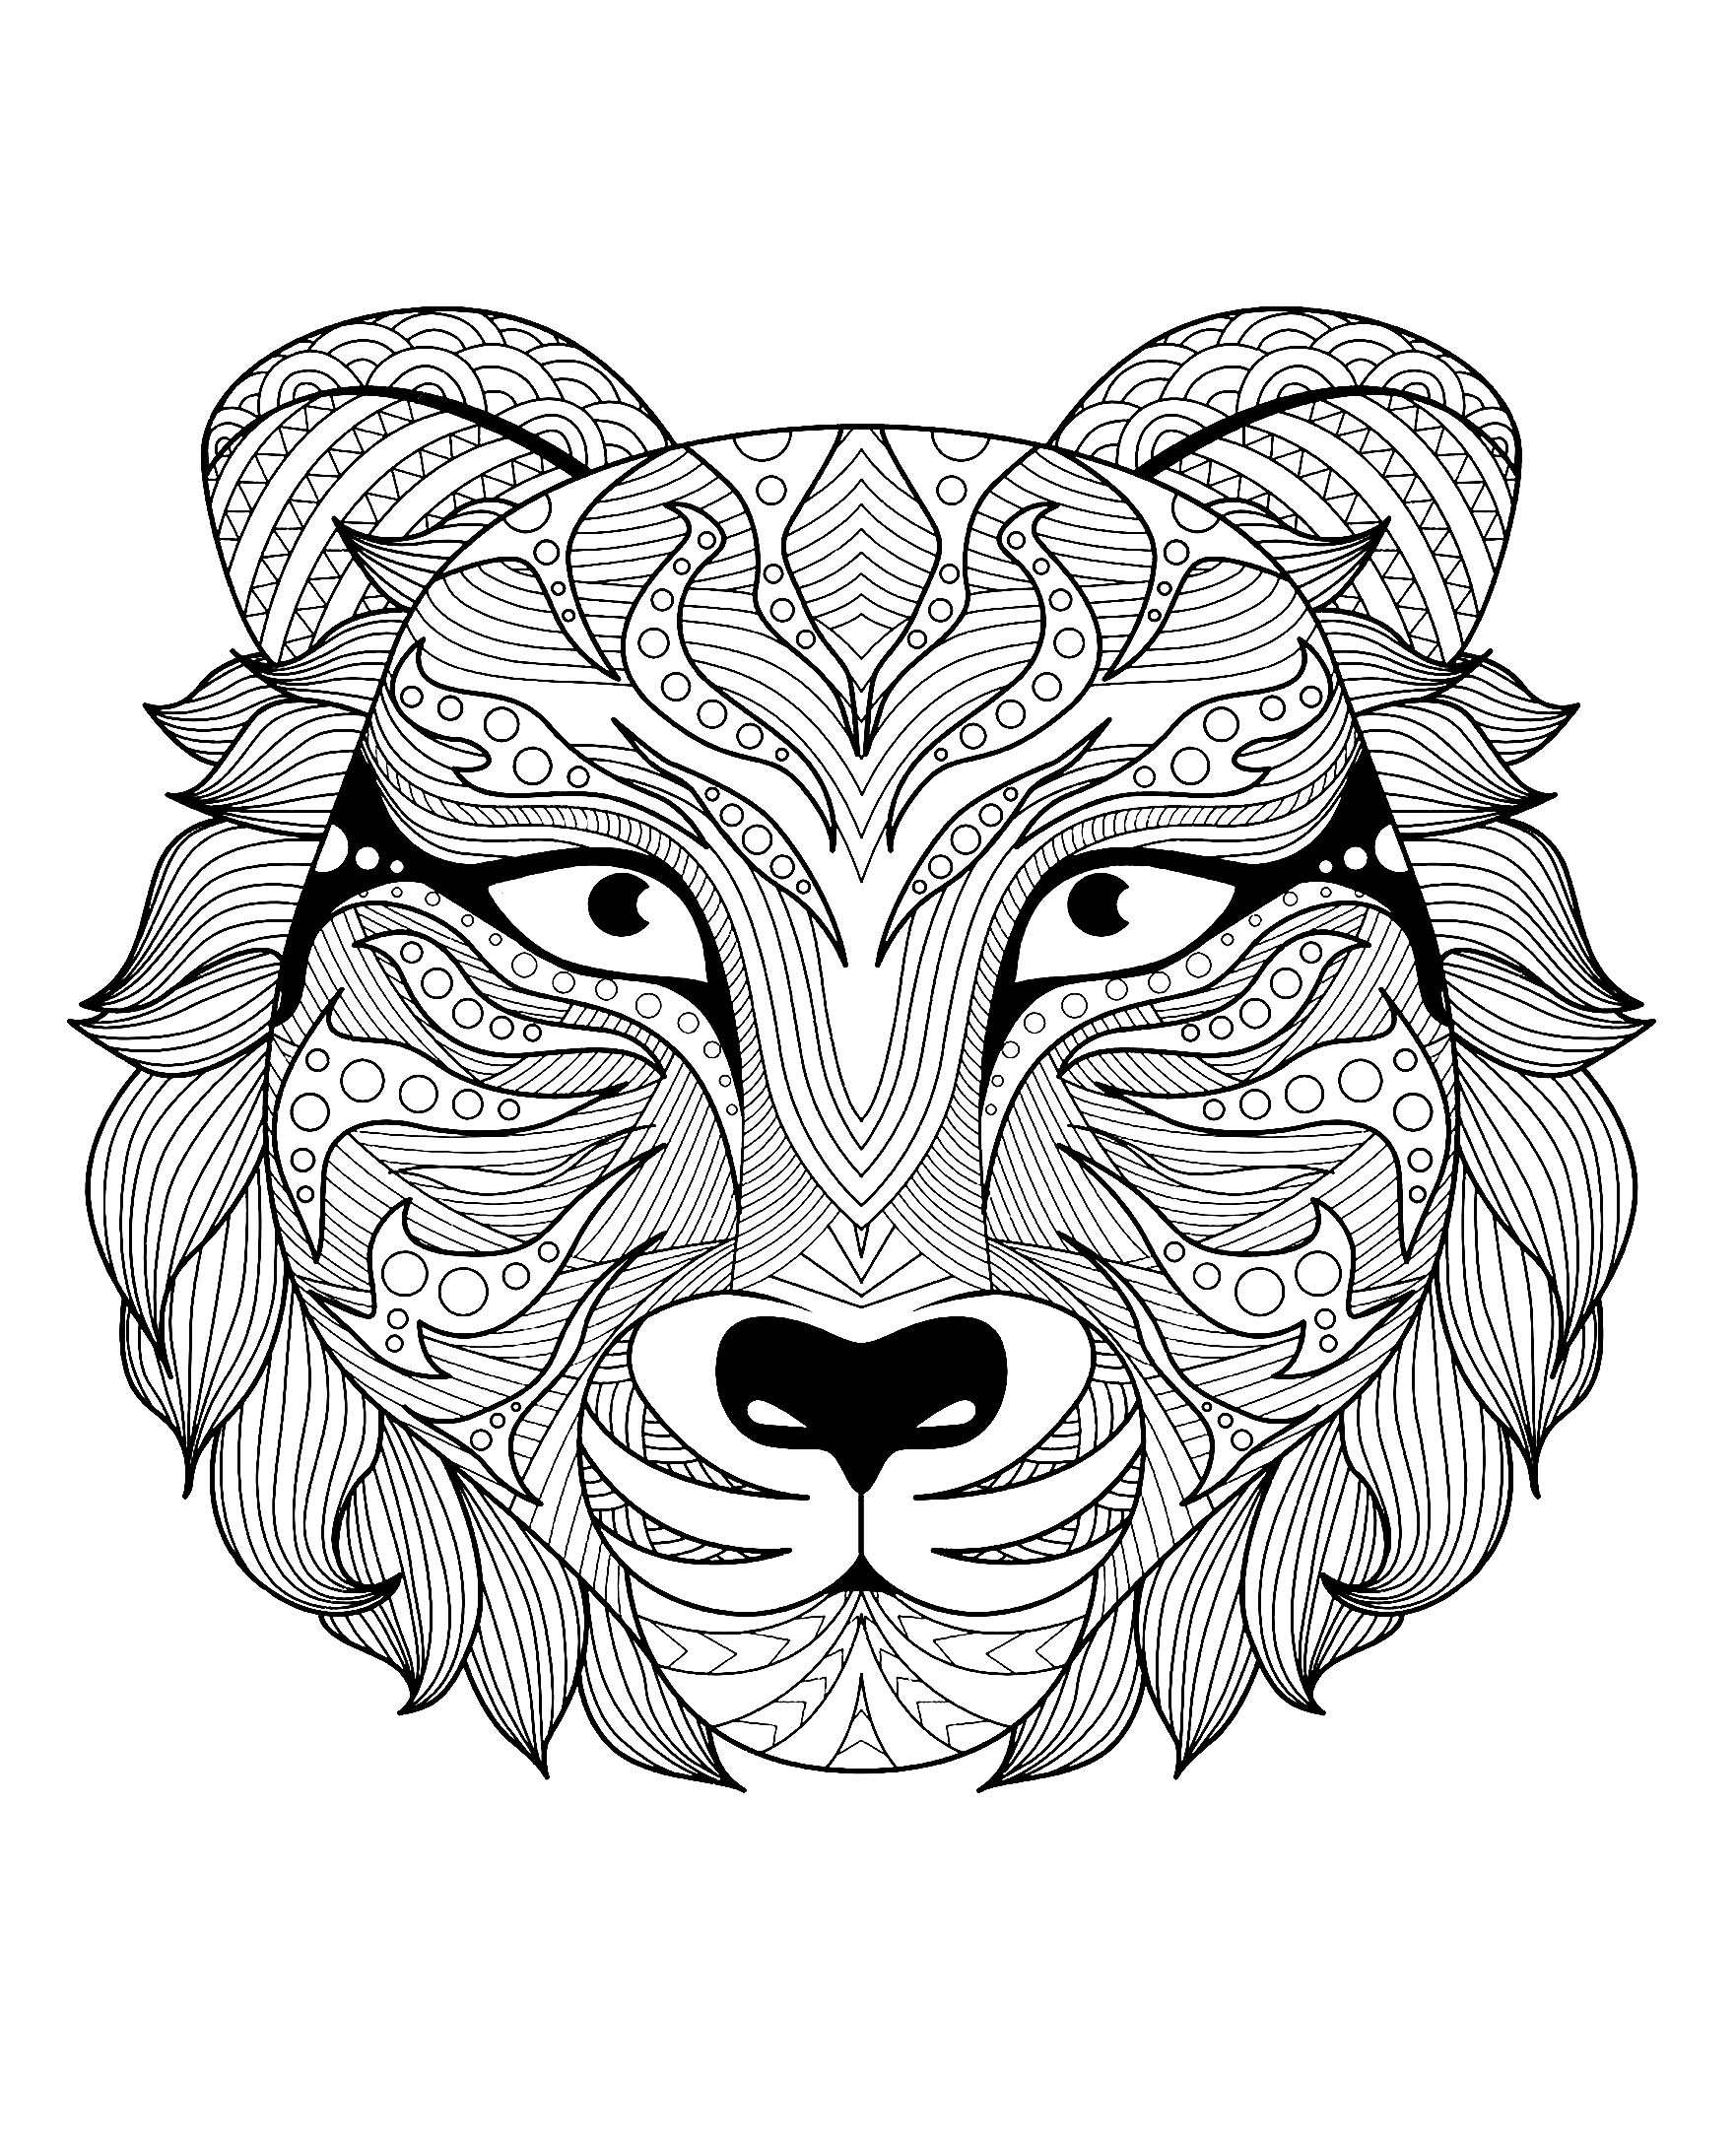 tiger coloring book baby tiger coloring pages to download and print for free tiger coloring book